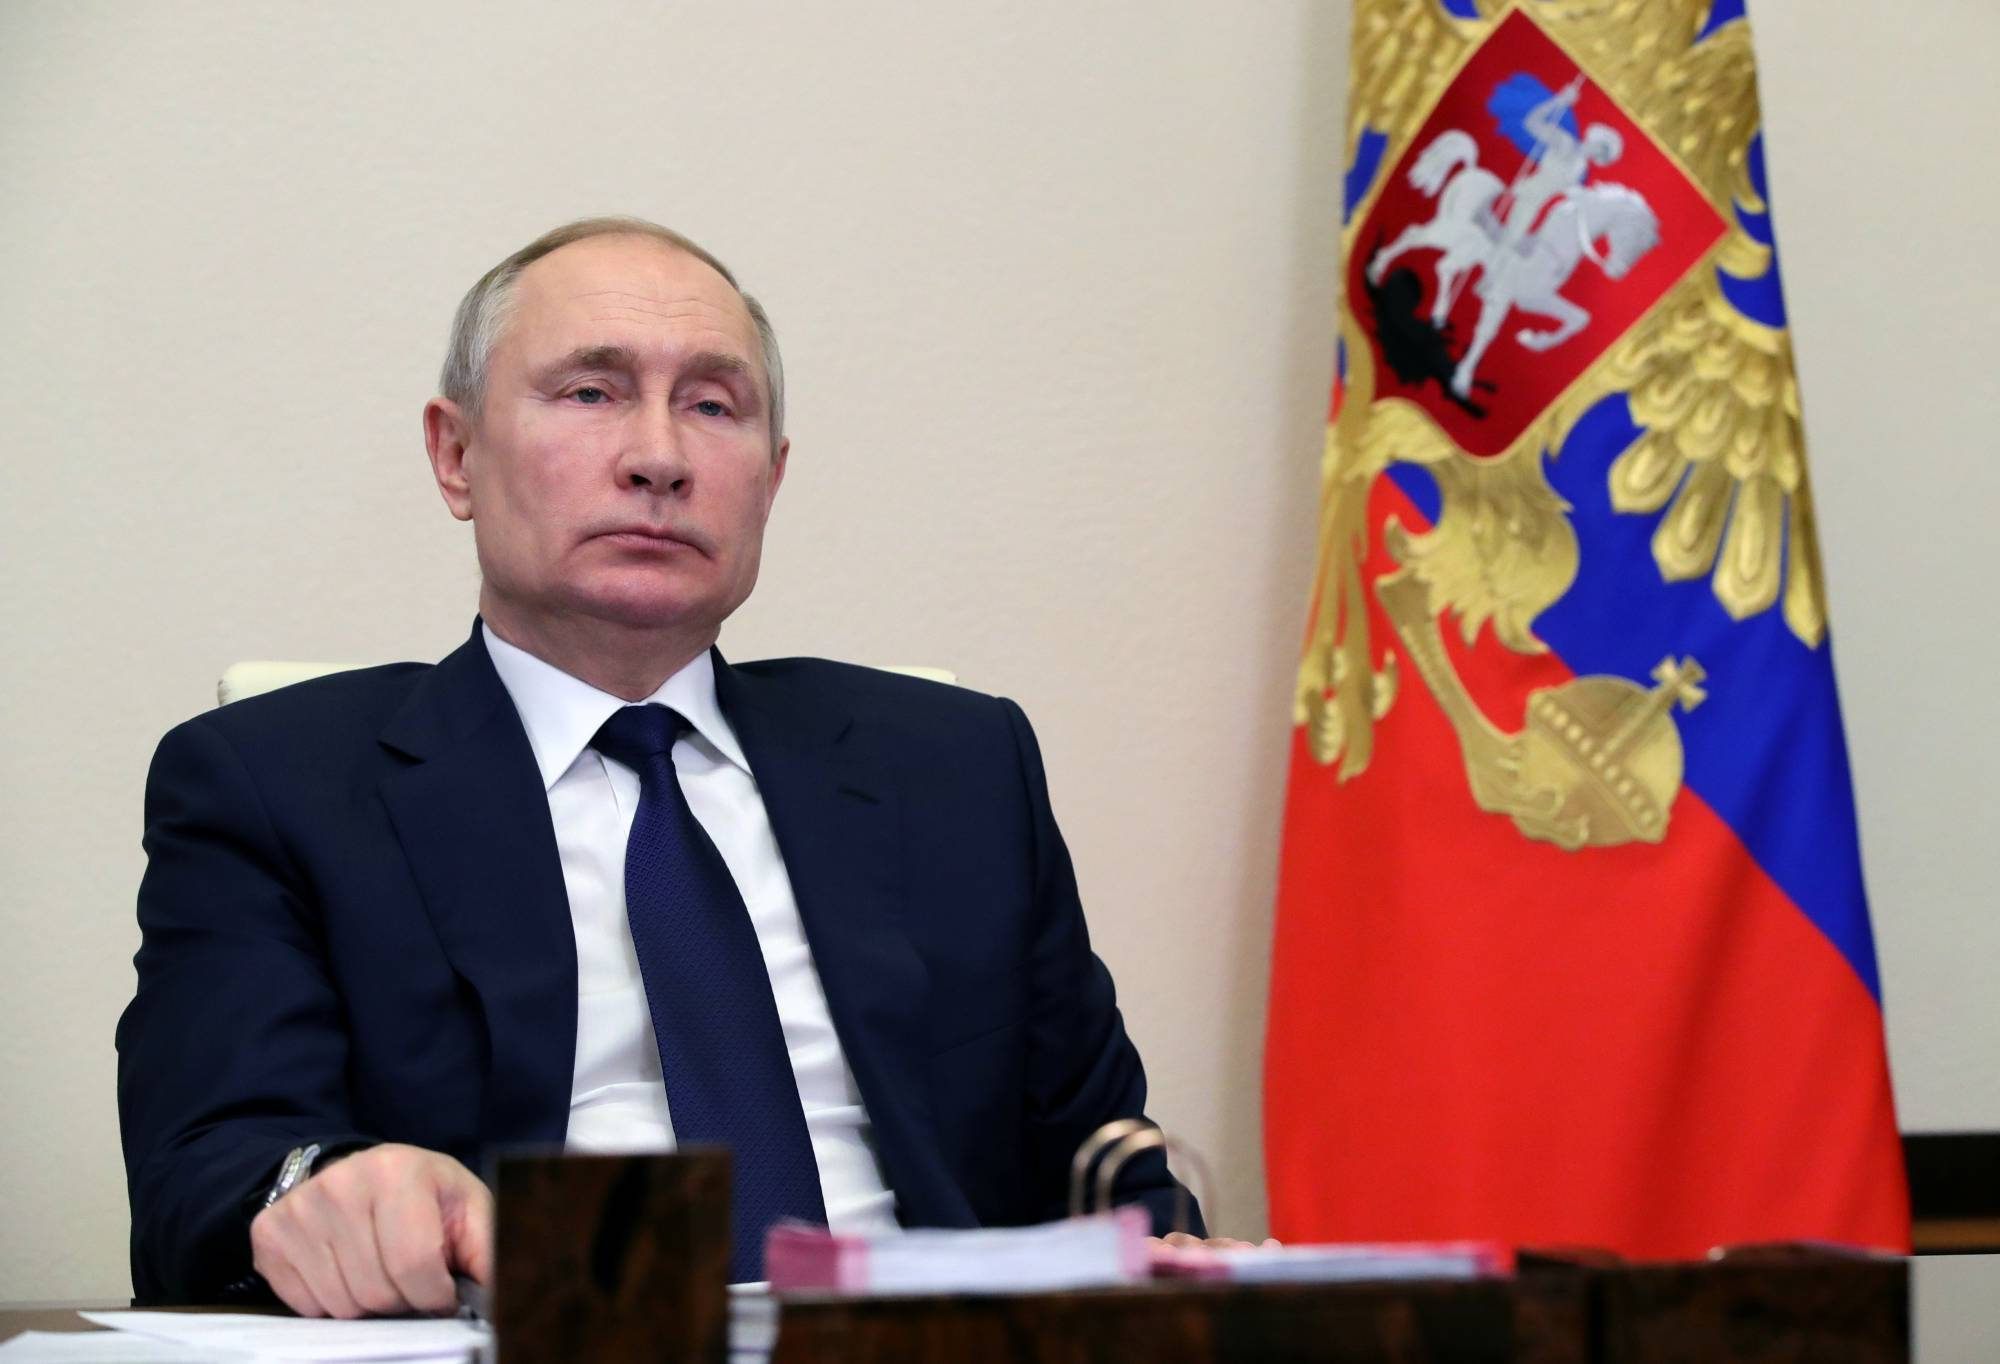 Russian President Vladimir Putin chairs a meeting with leaders of the country's political parties via a video conference call near Moscow on Feb. 17. Europe no longer has any illusions that Russia is on a trajectory toward liberal democracy.  | SPUTNIK / KREMLIN / VIA REUTERS